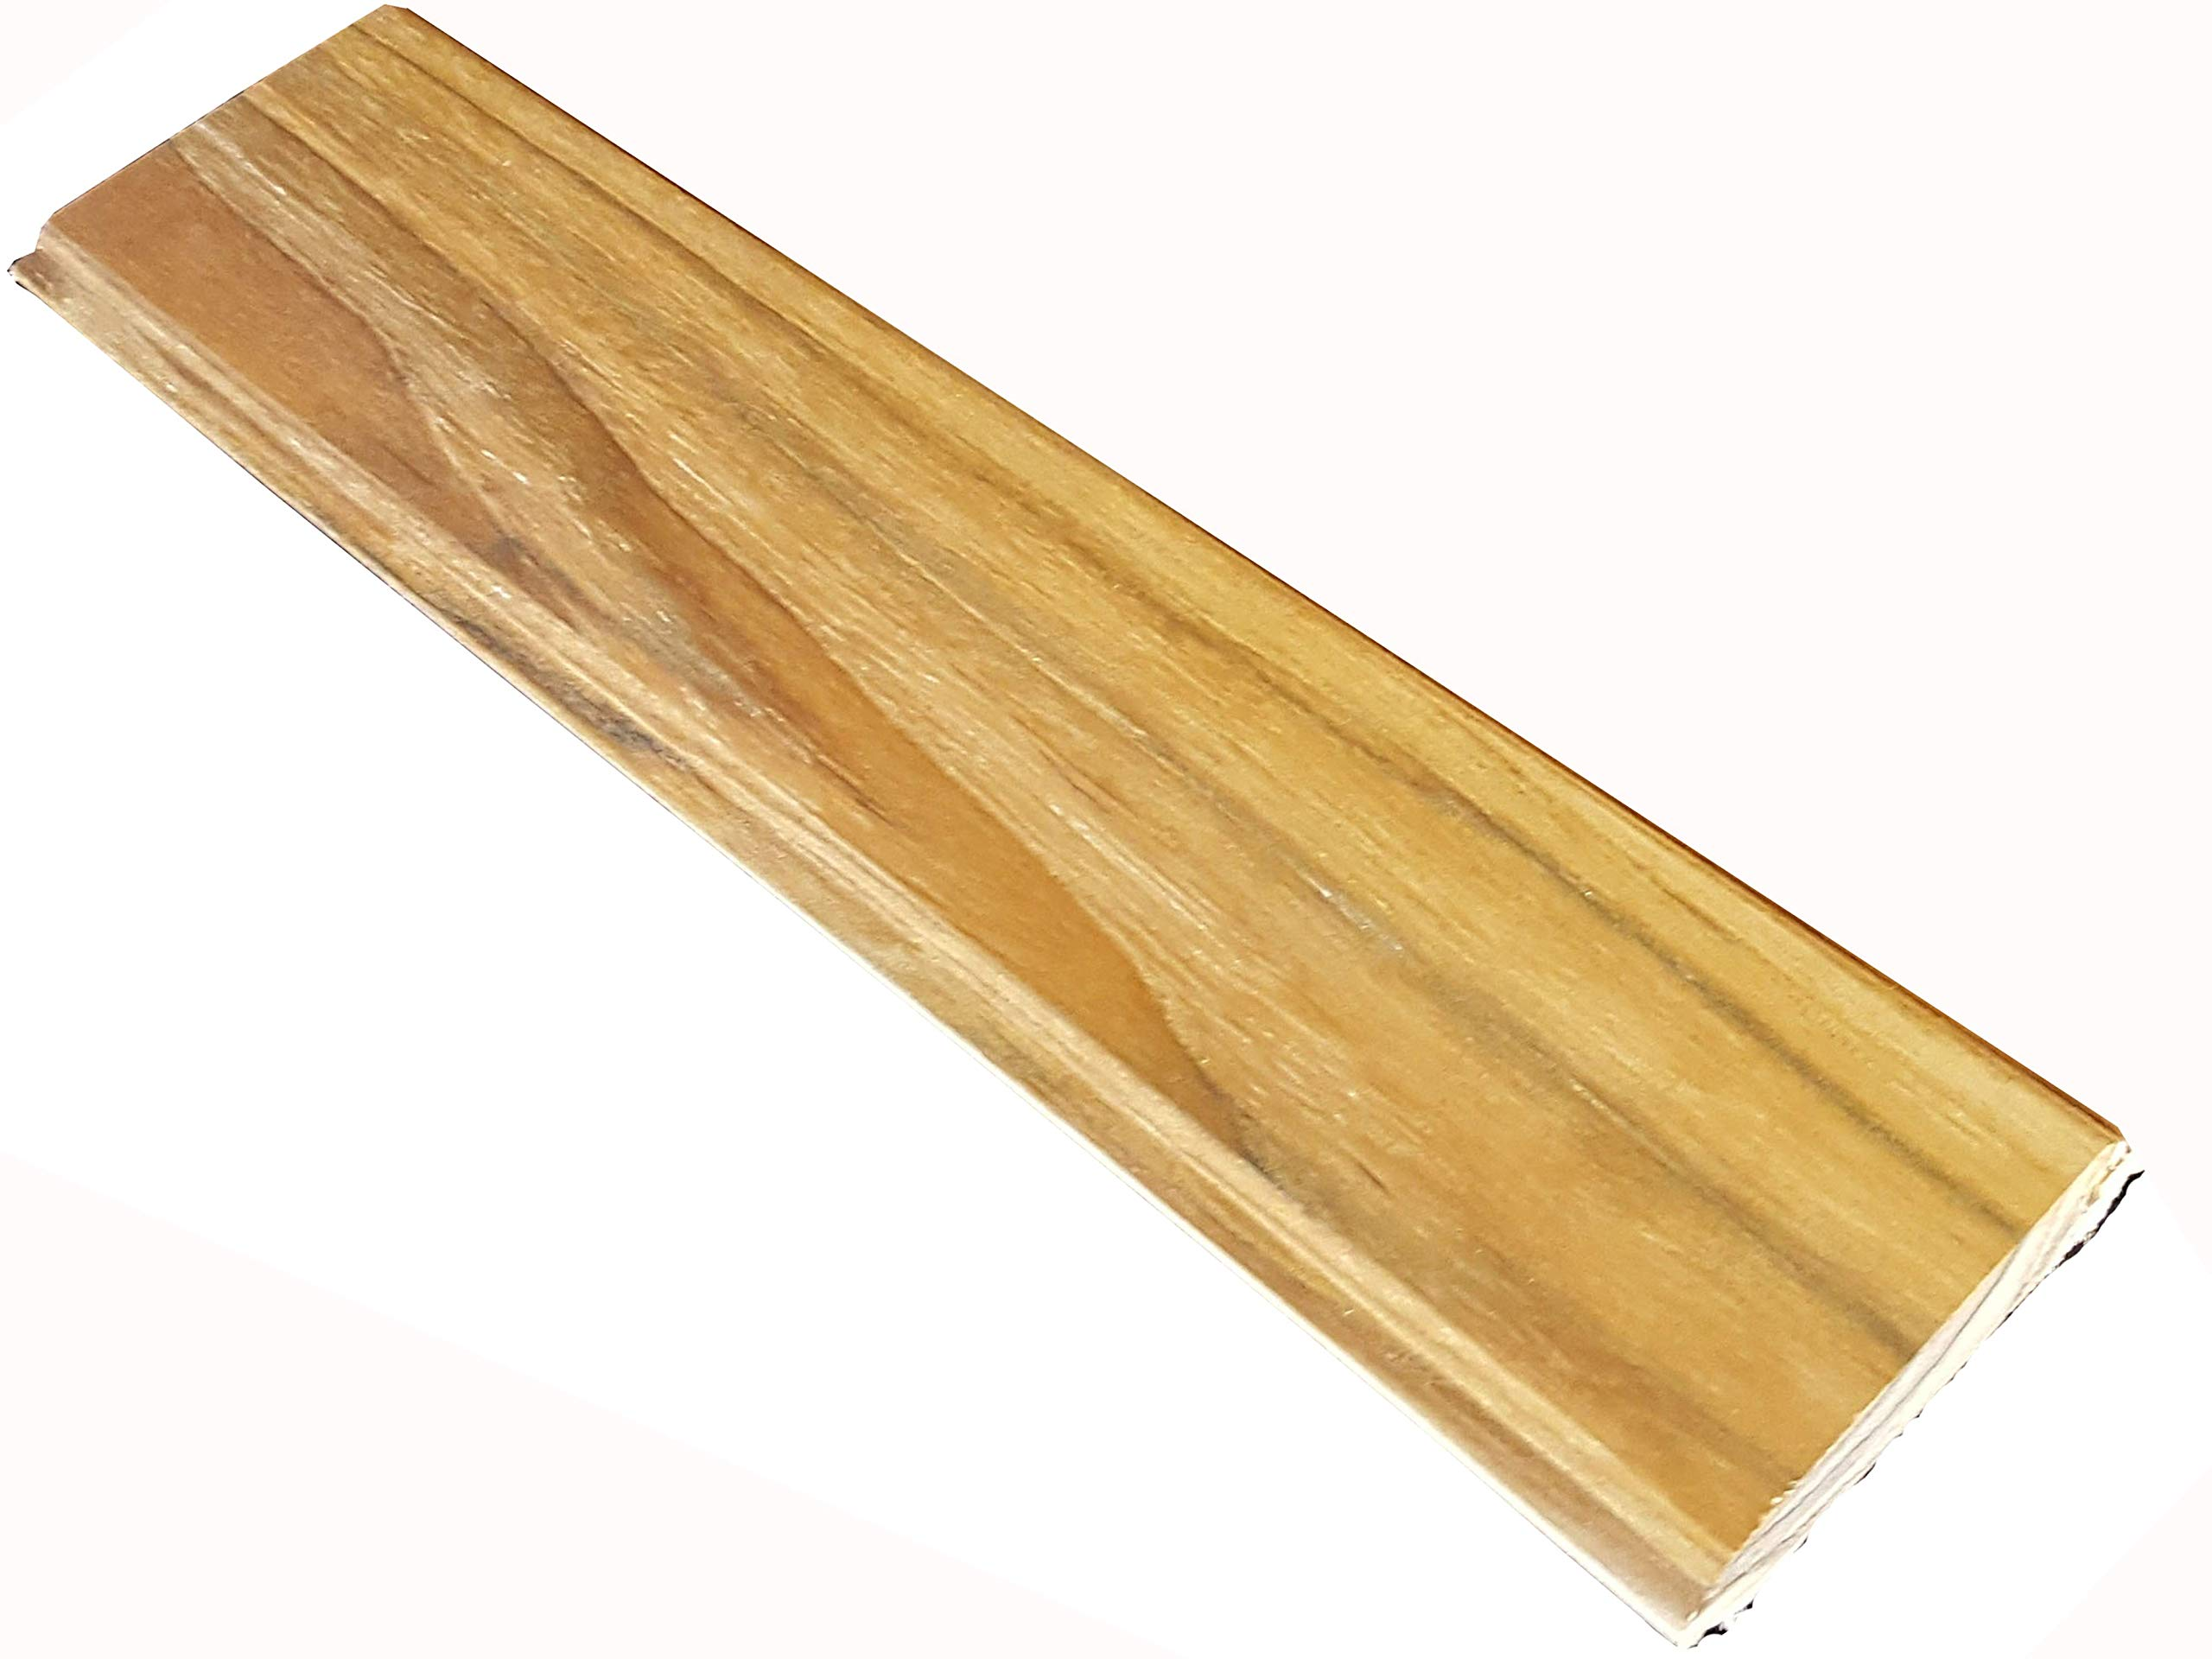 60 inch long TEAK WOOD Tongue & Groove - 100% heartwood, 40 square feet by Diamond Tropical Hardwoods